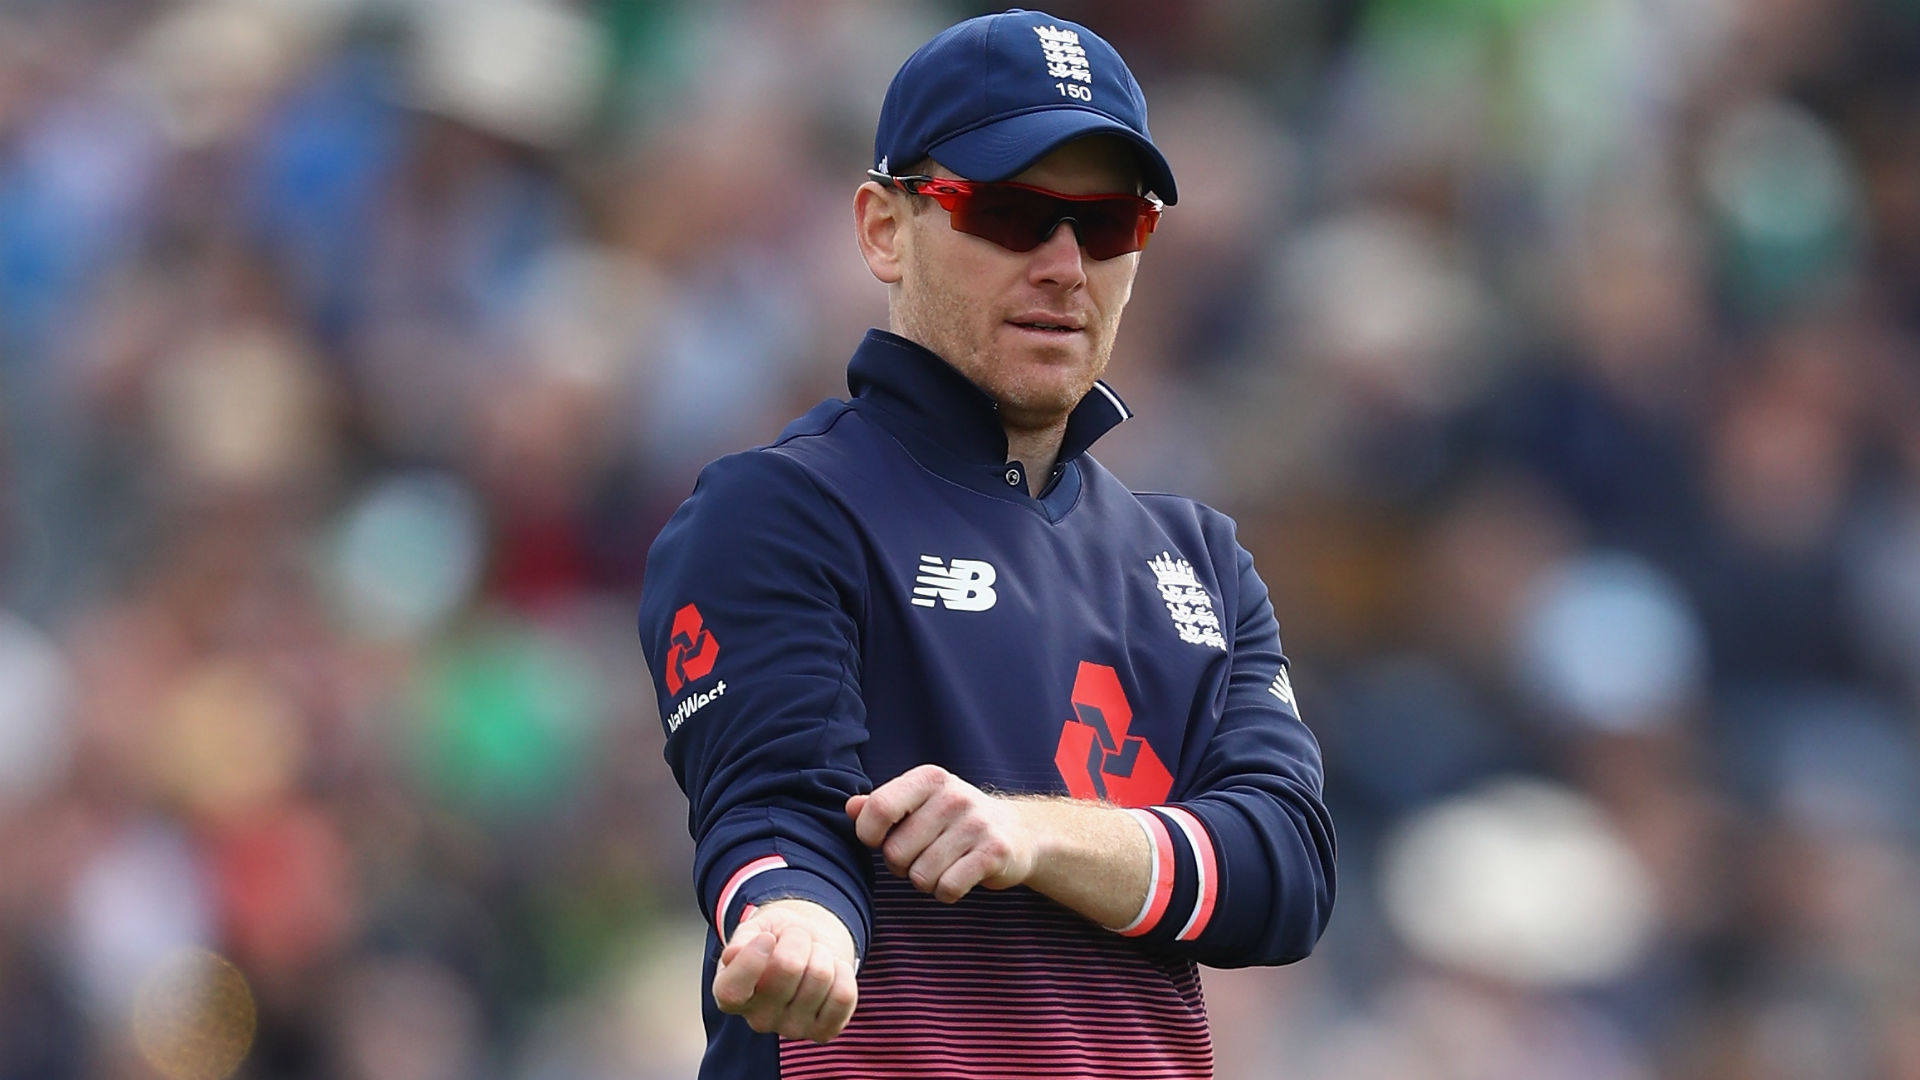 SCO v ENG 2018: Alex Hales will bat at no.3, says Eoin Morgan